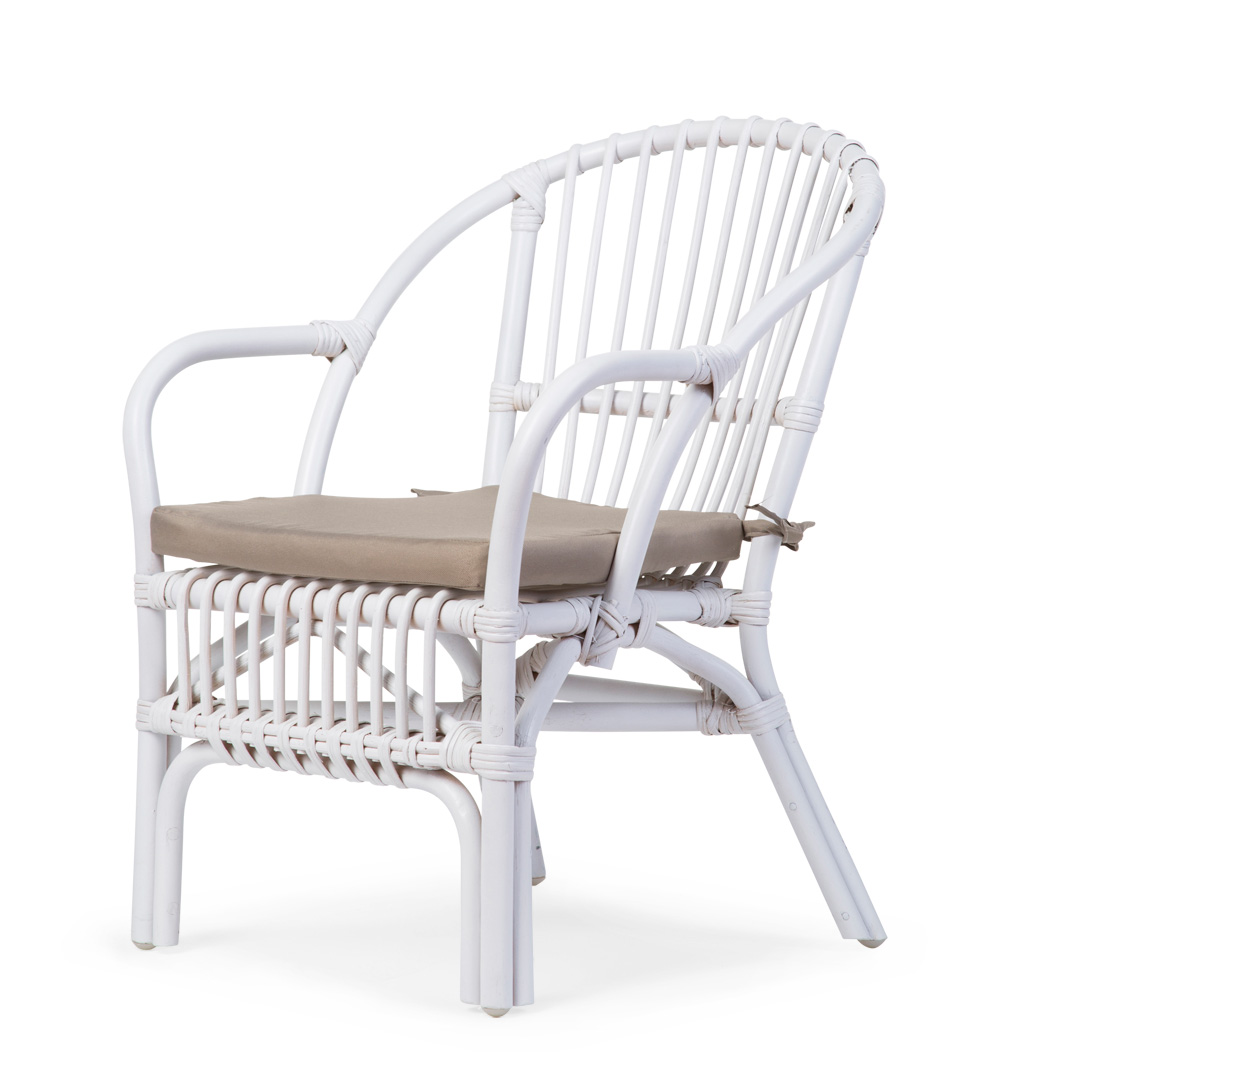 MONTANA KID CHAISE BLANCHE+ COUSSIN